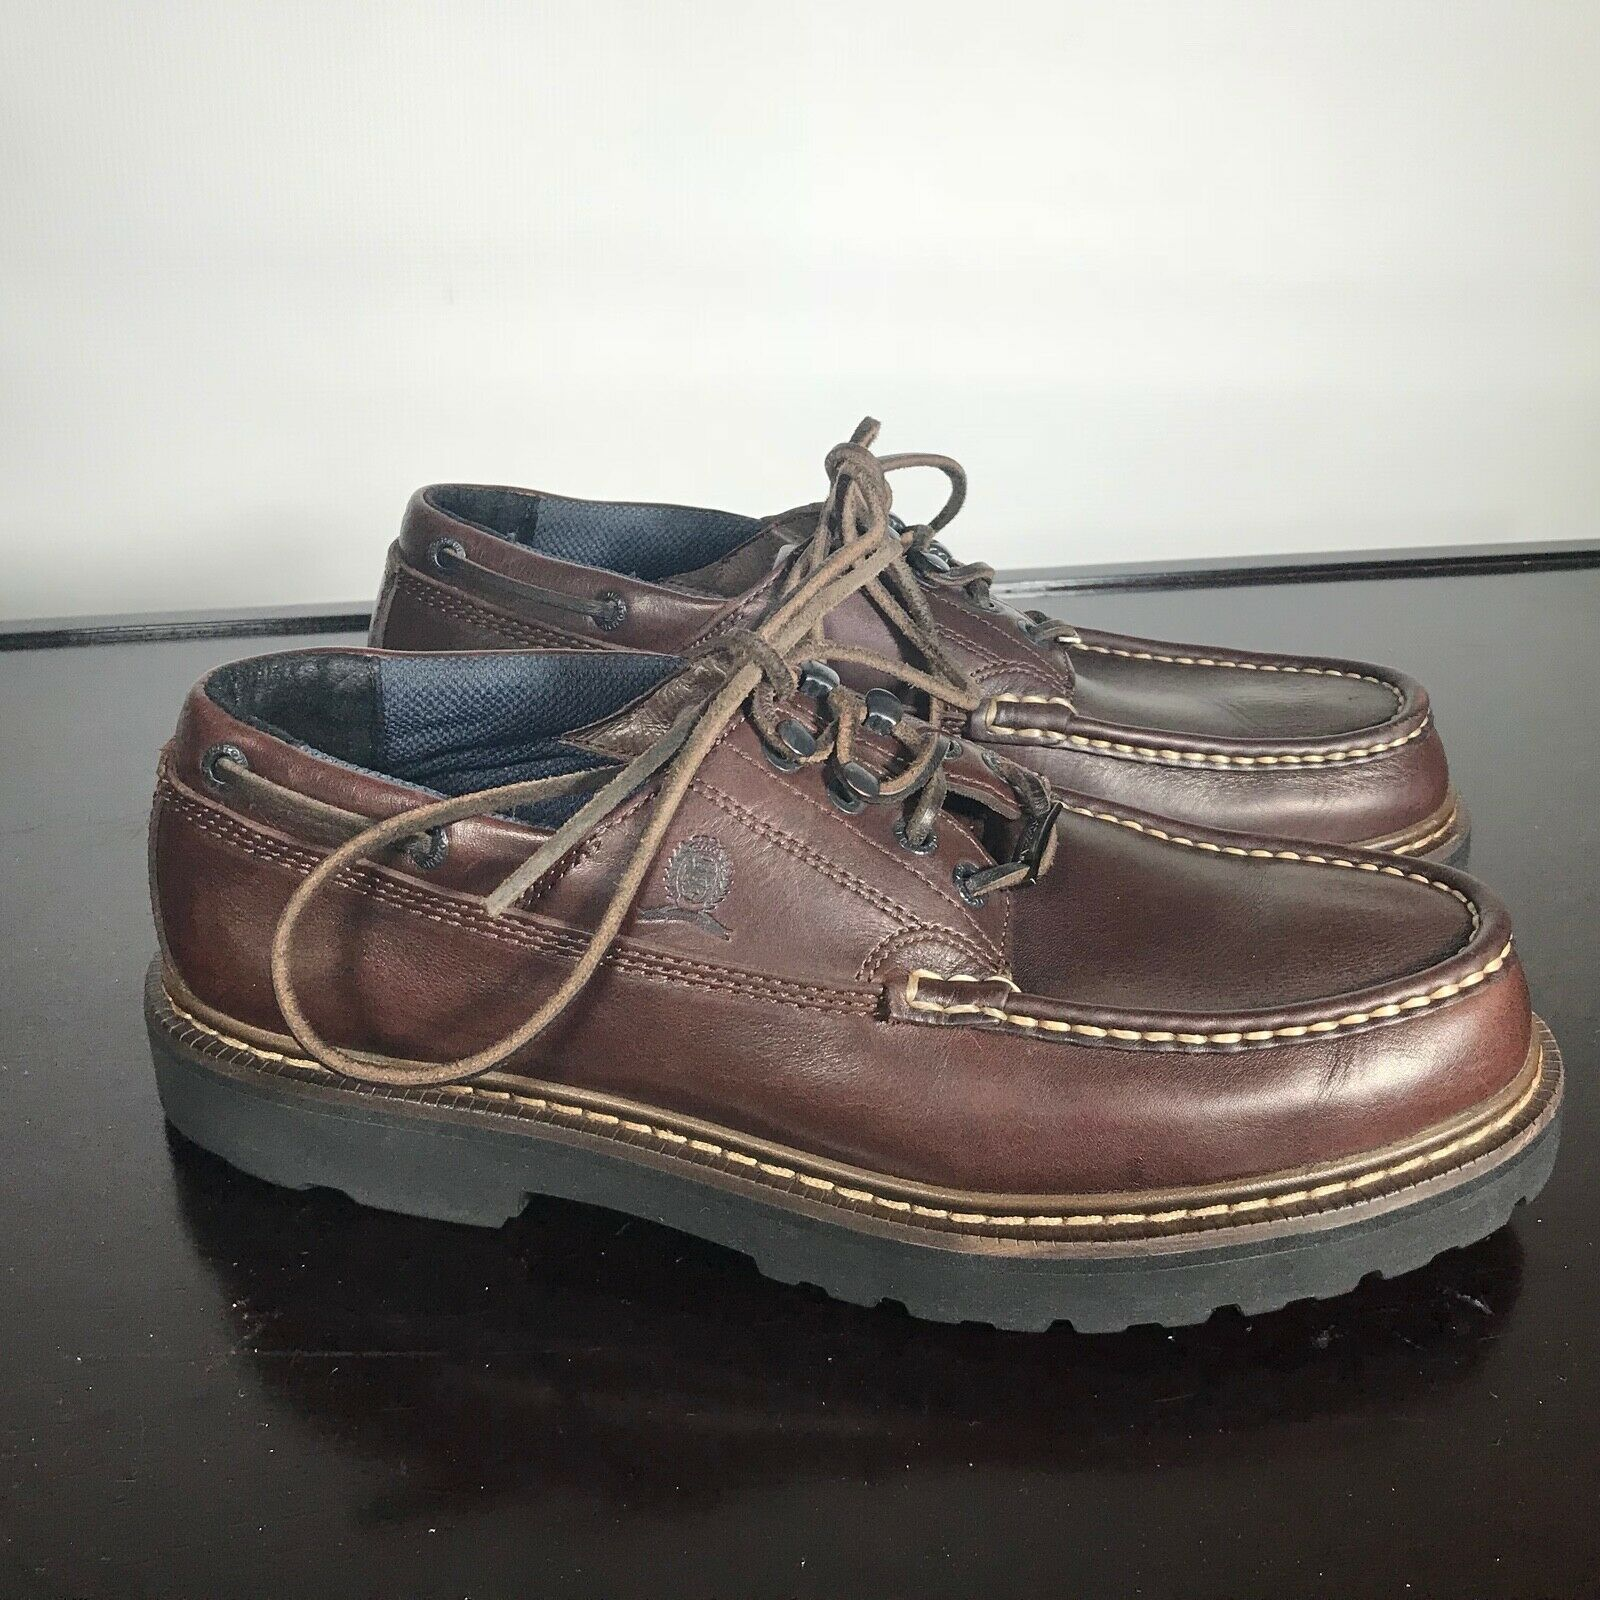 Primary image for Tommy Hilfiger Heavy Duty Leather Boat Shoes Men's Size 11 M Brown. Waterproof